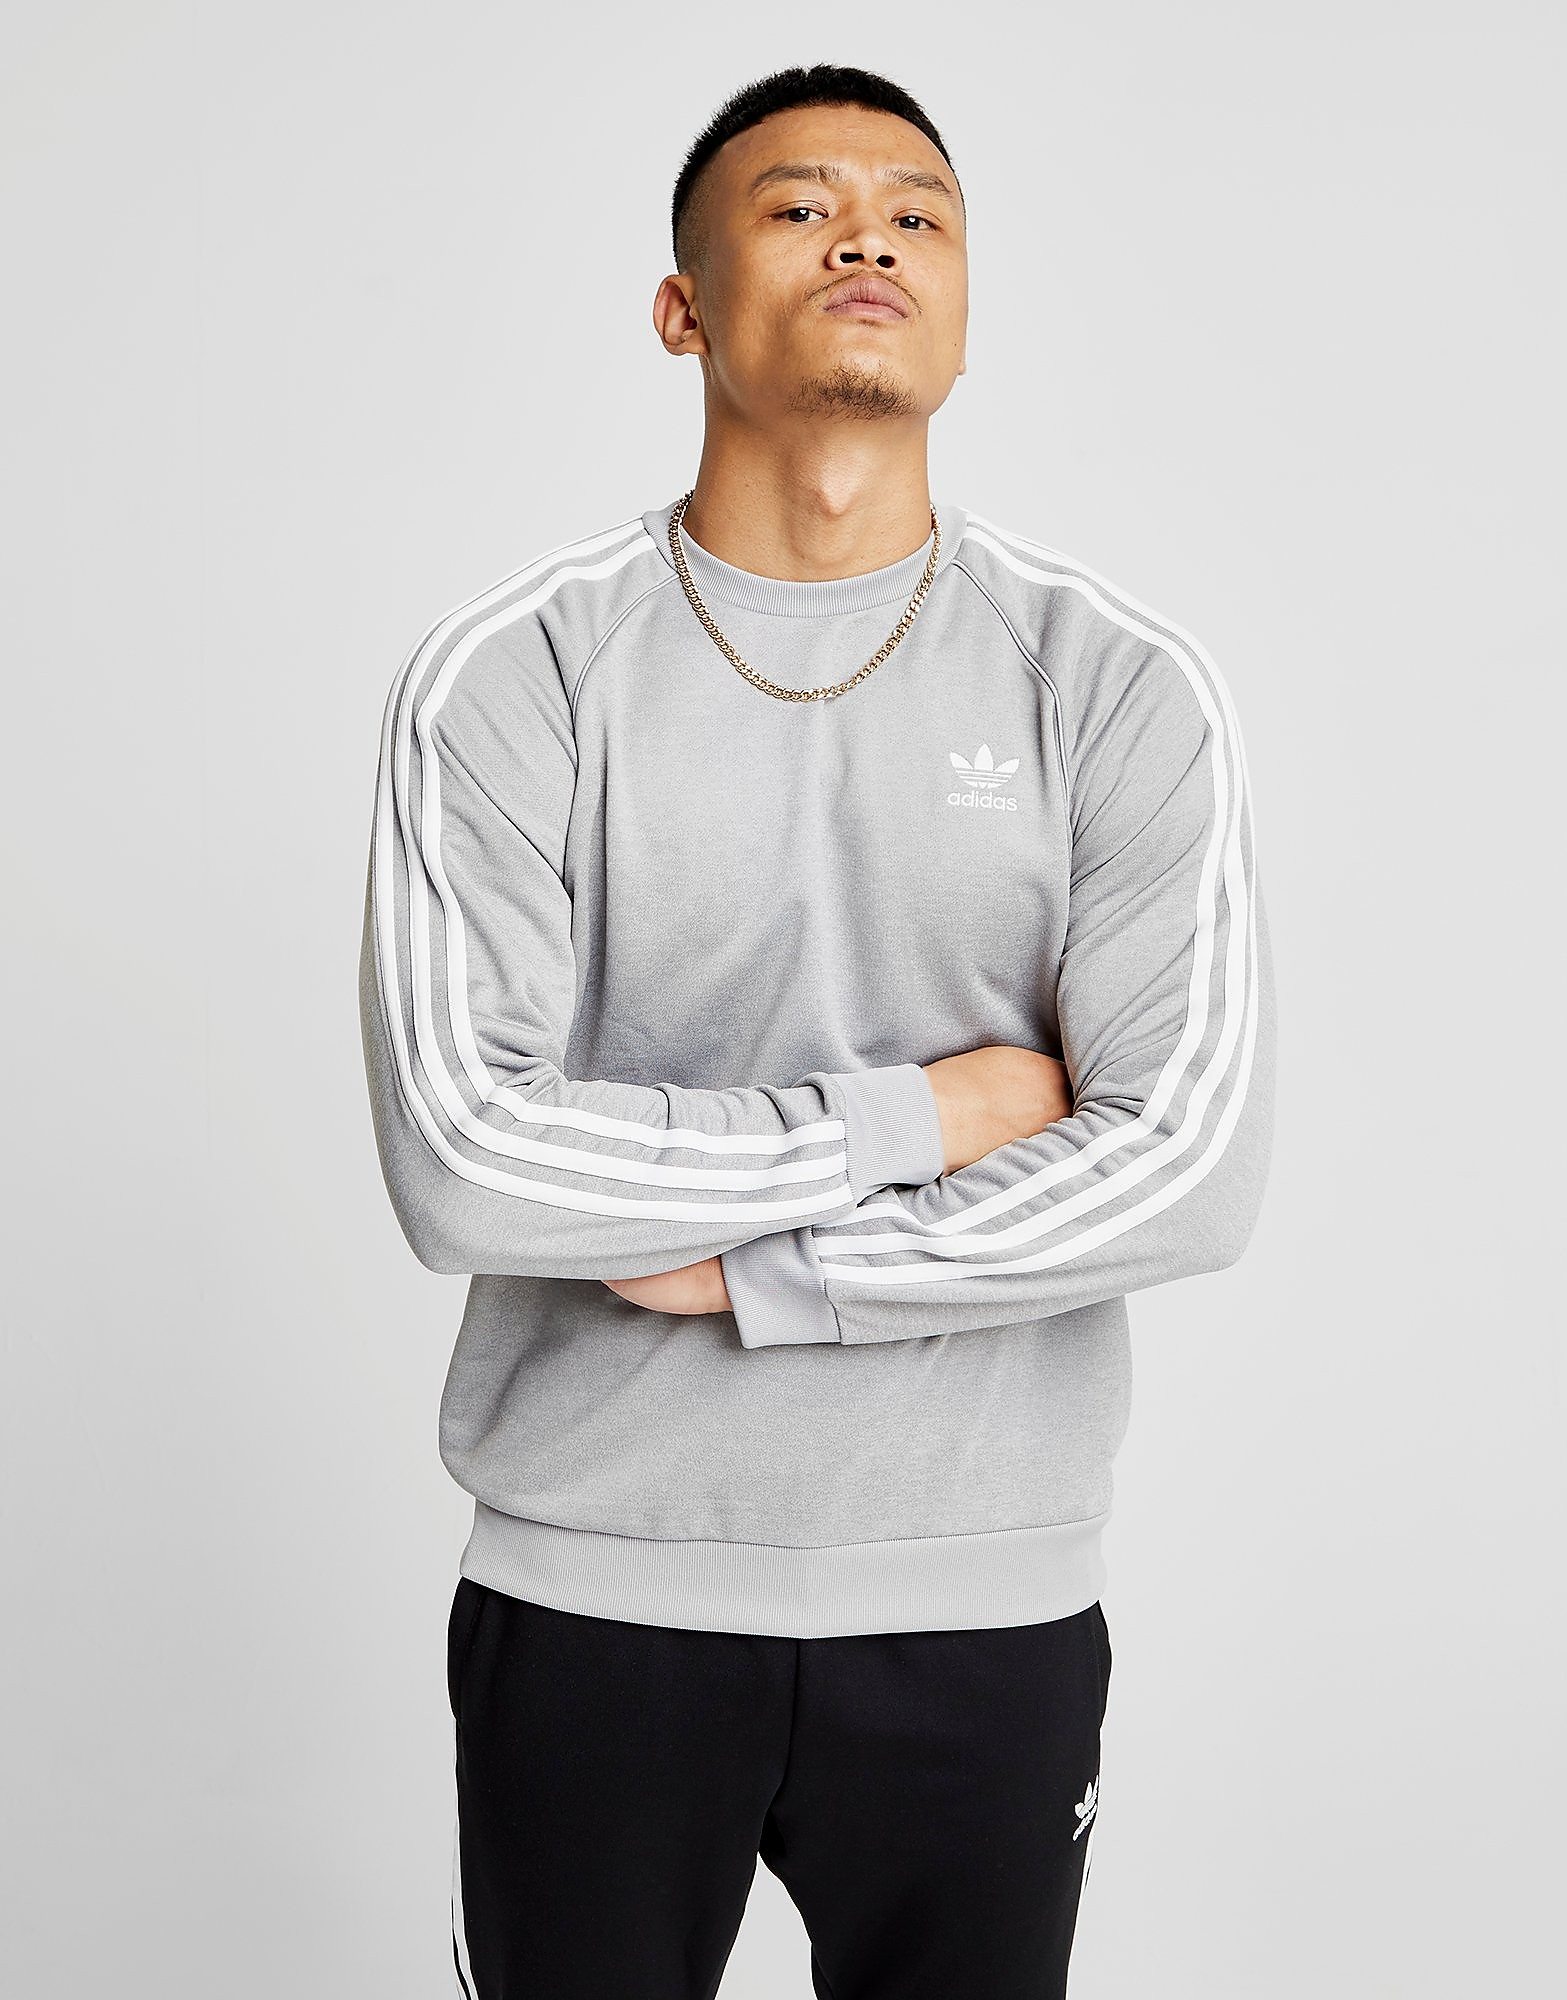 adidas Originals Superstar Crew Sweatshirt